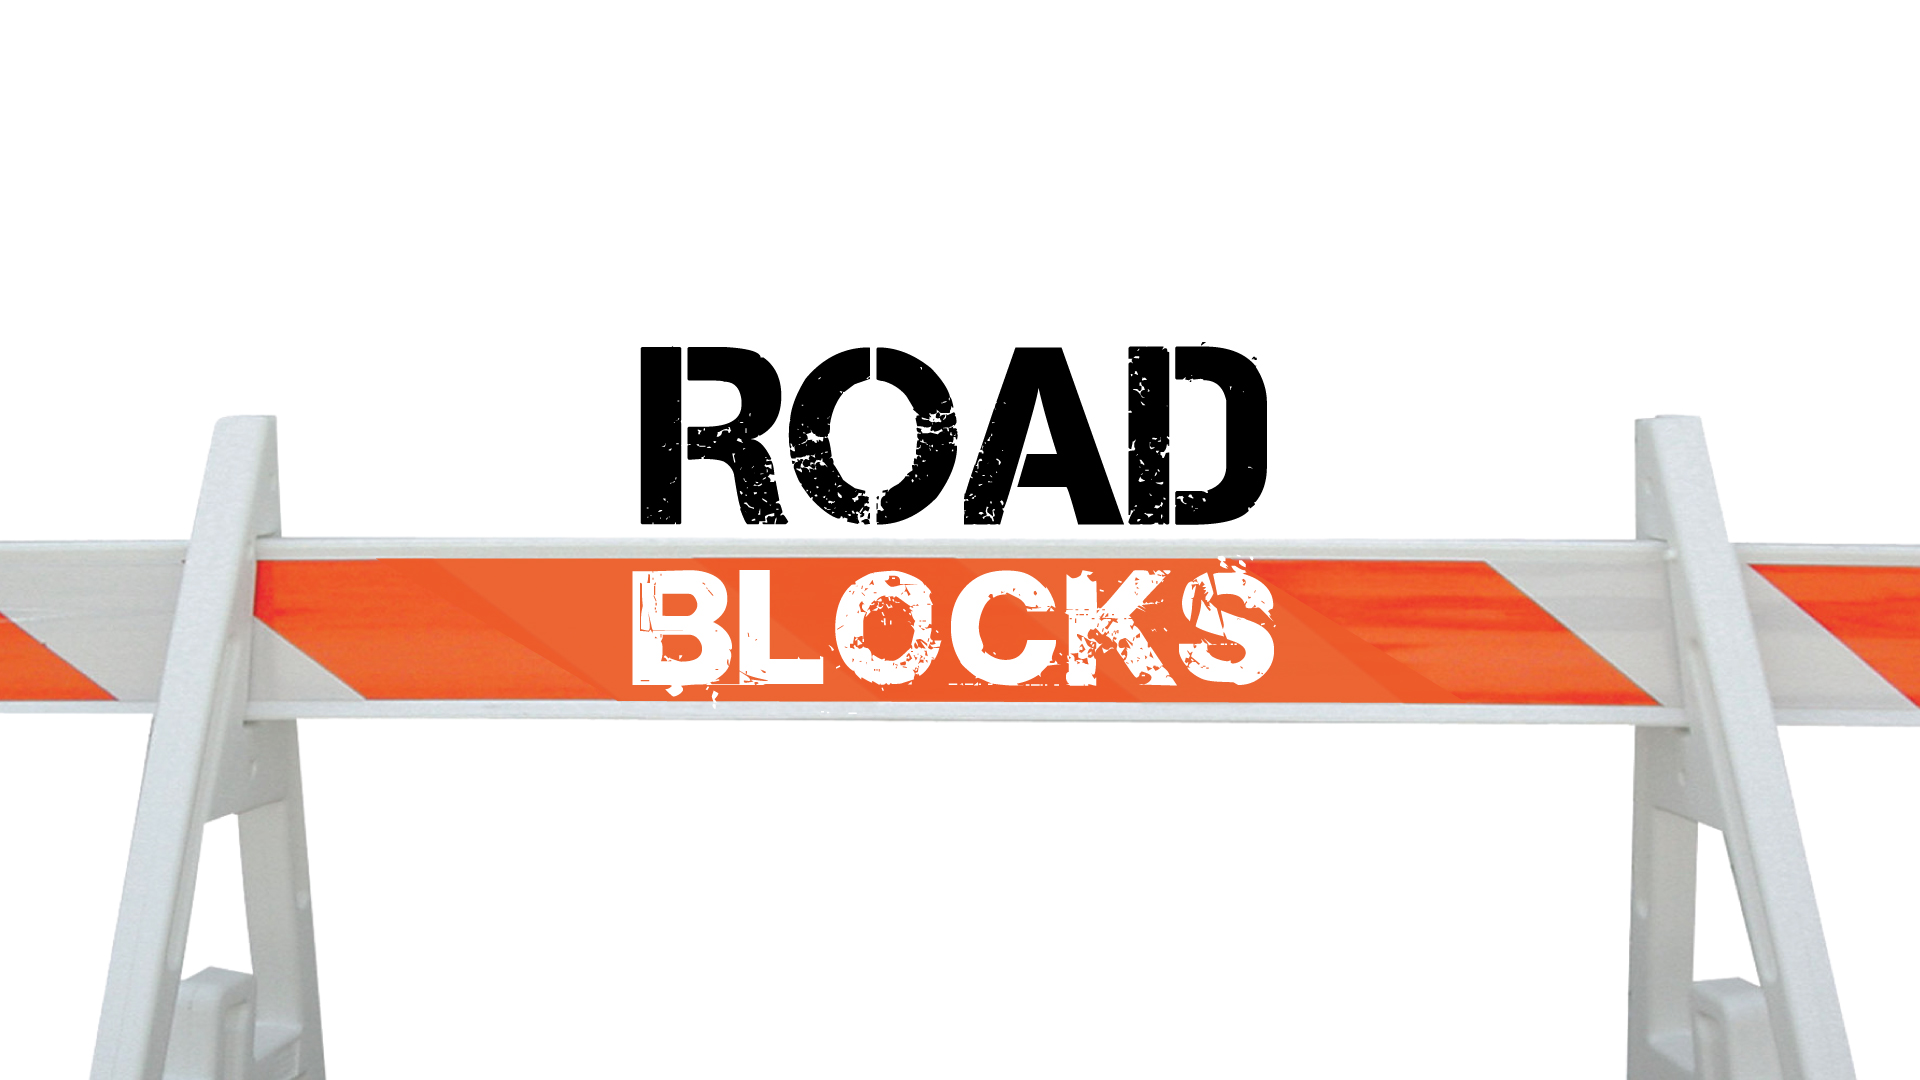 The Rock Church of Fenton, Lake Fenton, Linden, and Byron, Michigan exists to preach the Word of God, Baptize, and Disciple Road Blocks from Satan